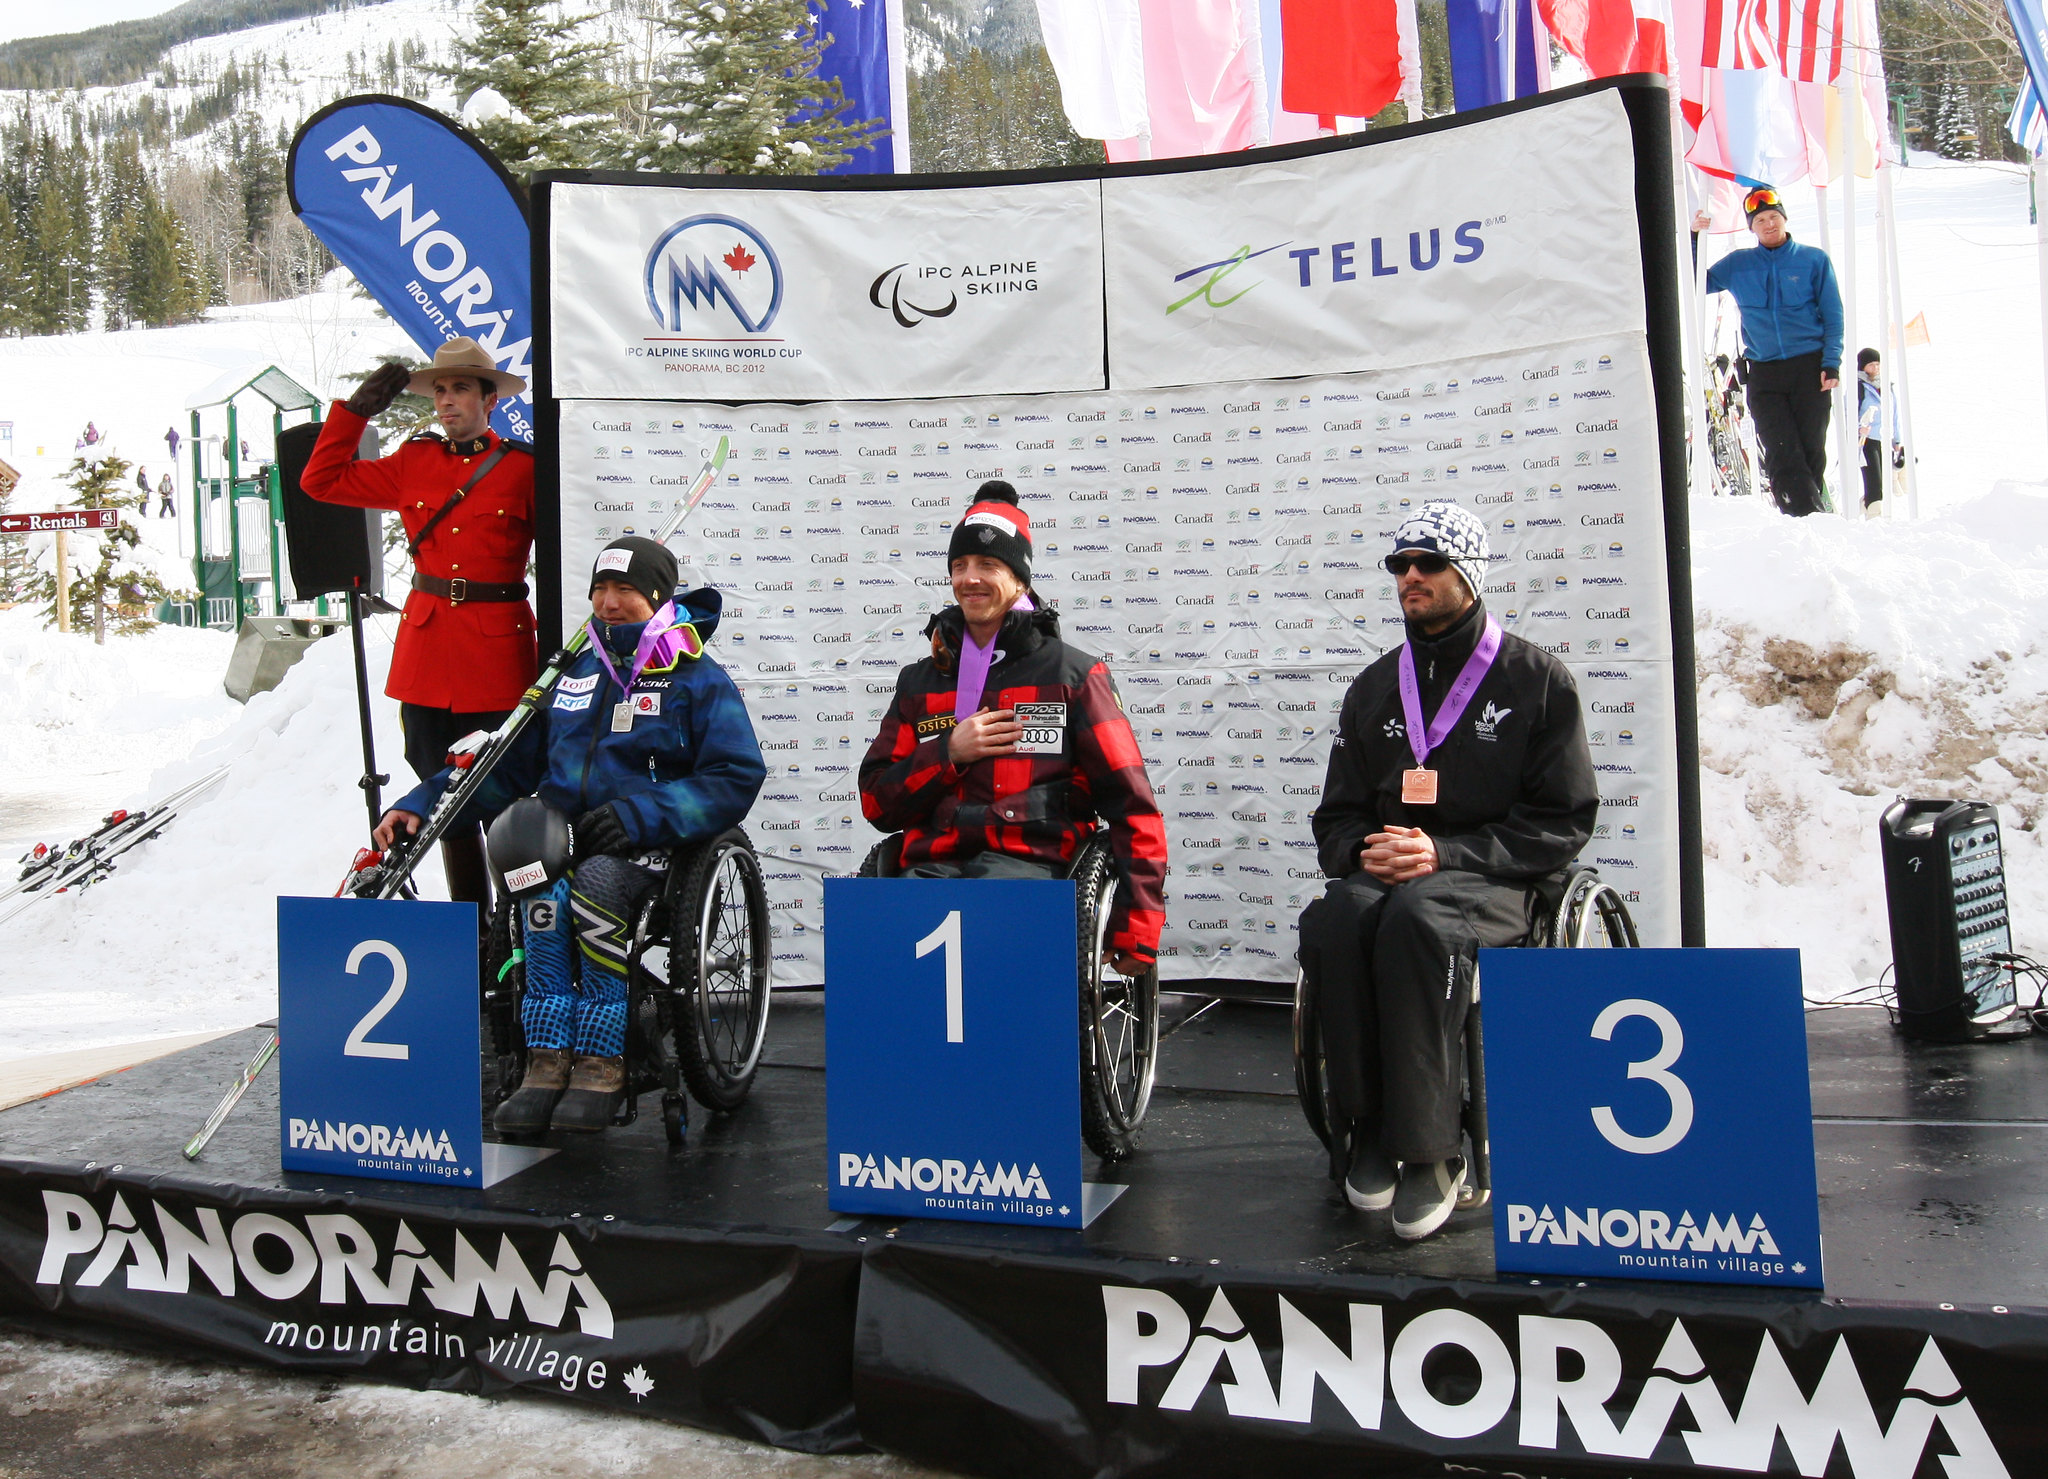 Josh Dueck on the podium for his IPC World Cup super-G win in Panorama, B.C.